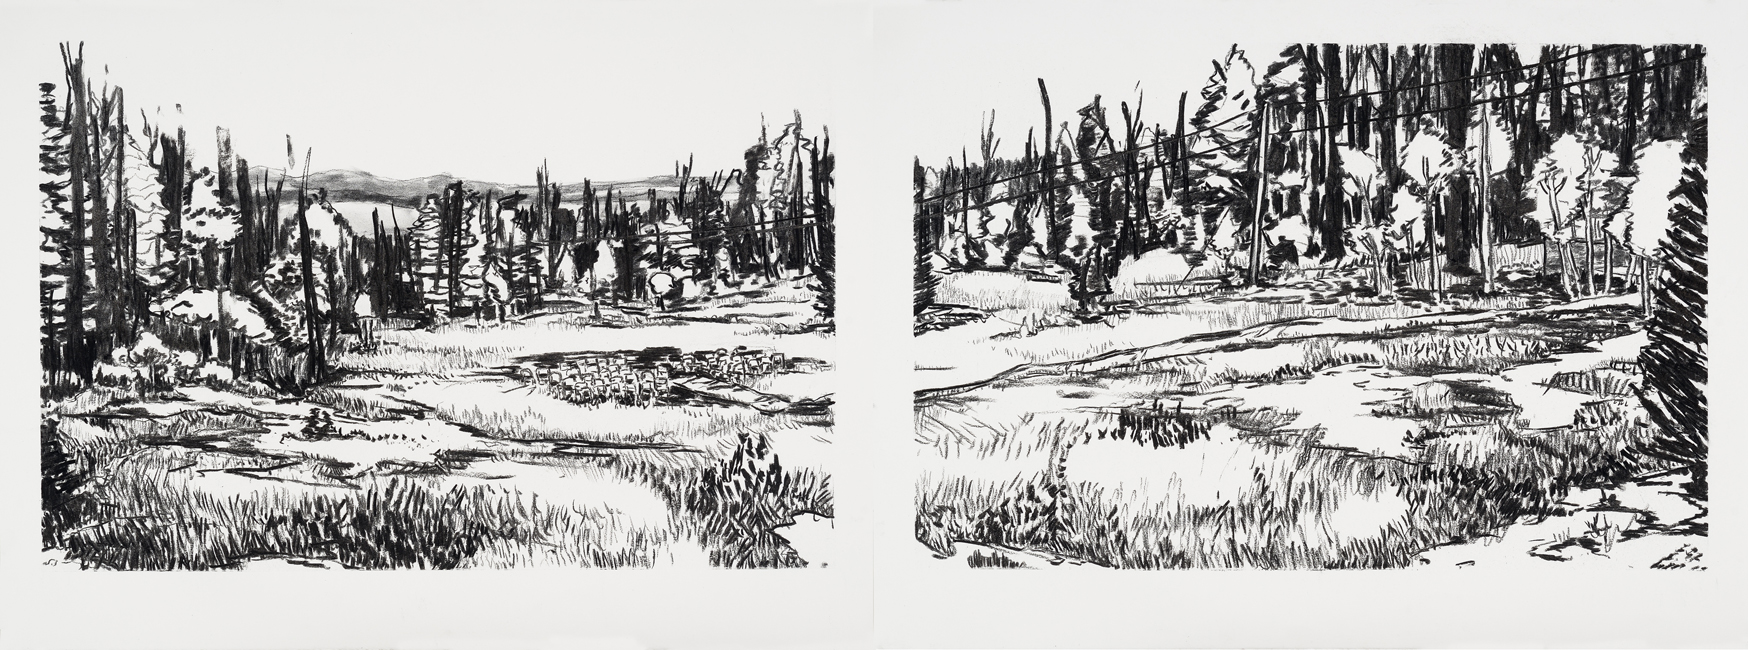 "Meadow, 22"" x 30"" (x 2), charcoal on paper, 2014"